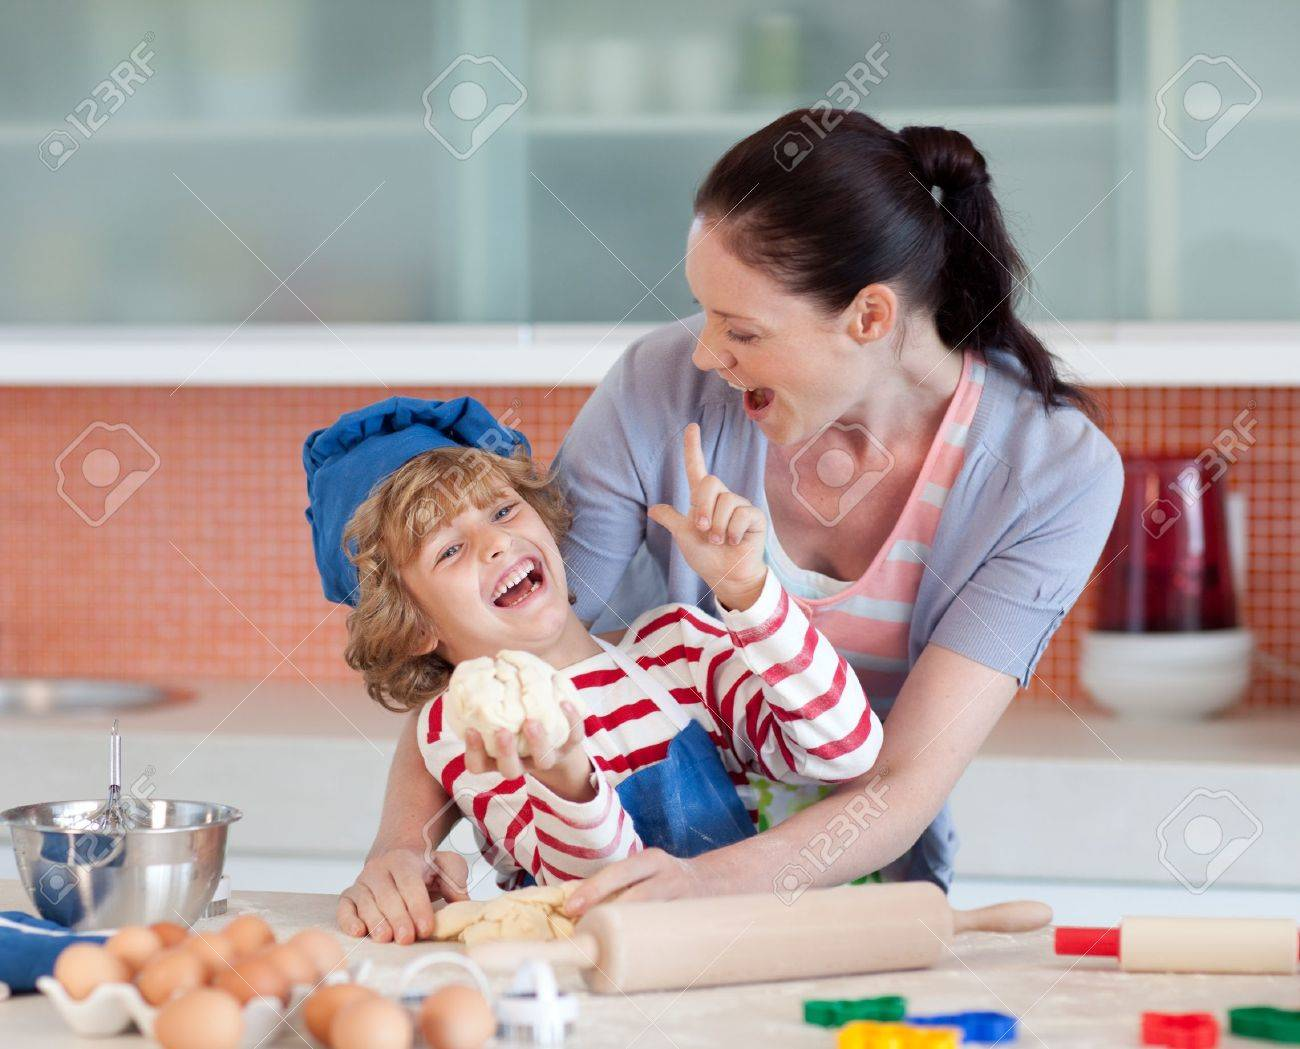 Laughing family having fun in the kitchen Stock Photo - 10249778